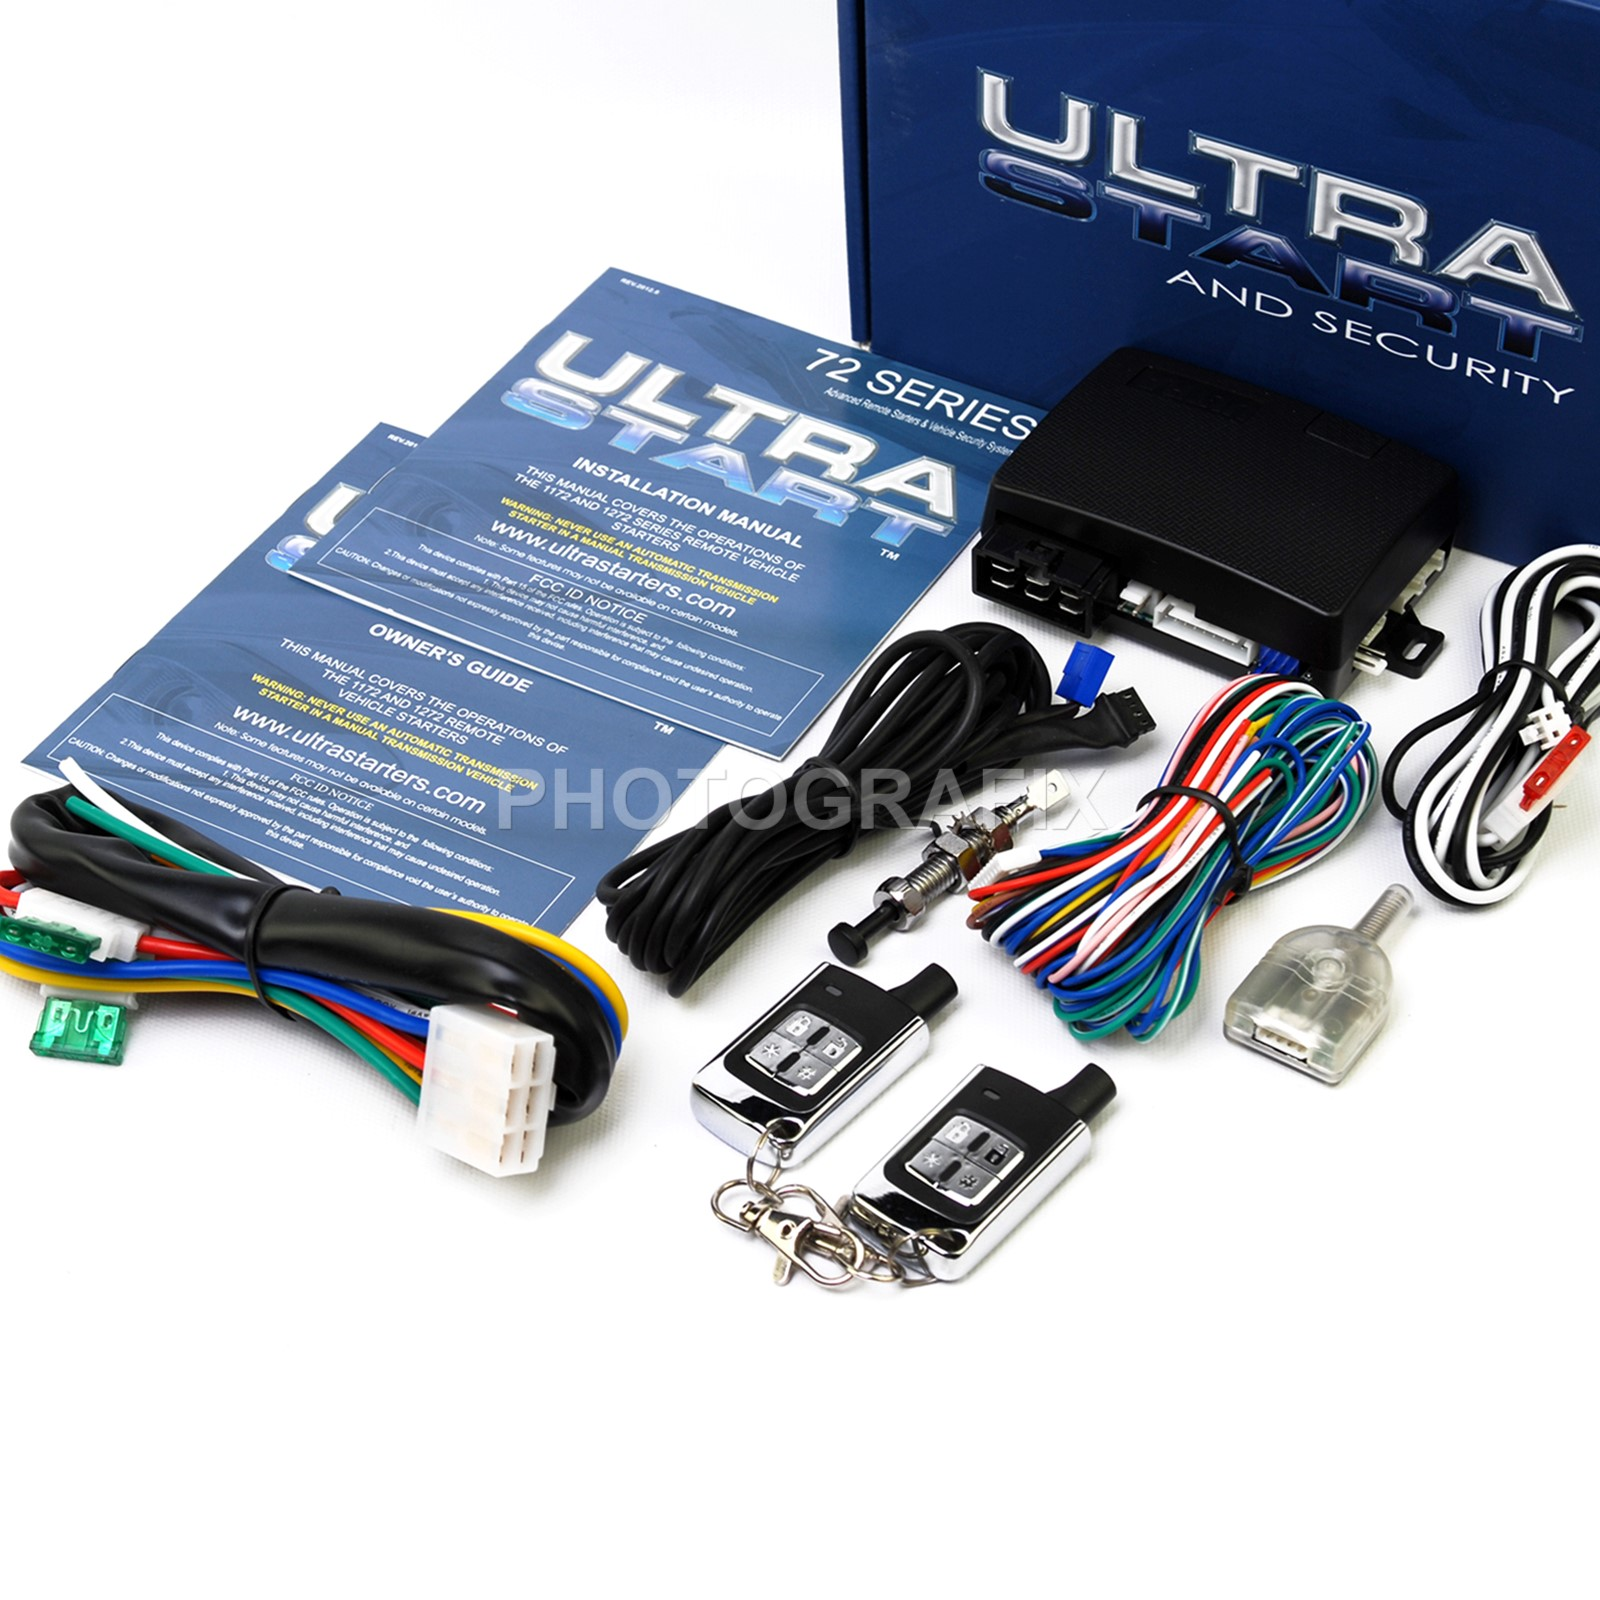 medium resolution of ultra start 1272 xr pro keyless auto remote car start starter diagrams start wiring remote oltrastart